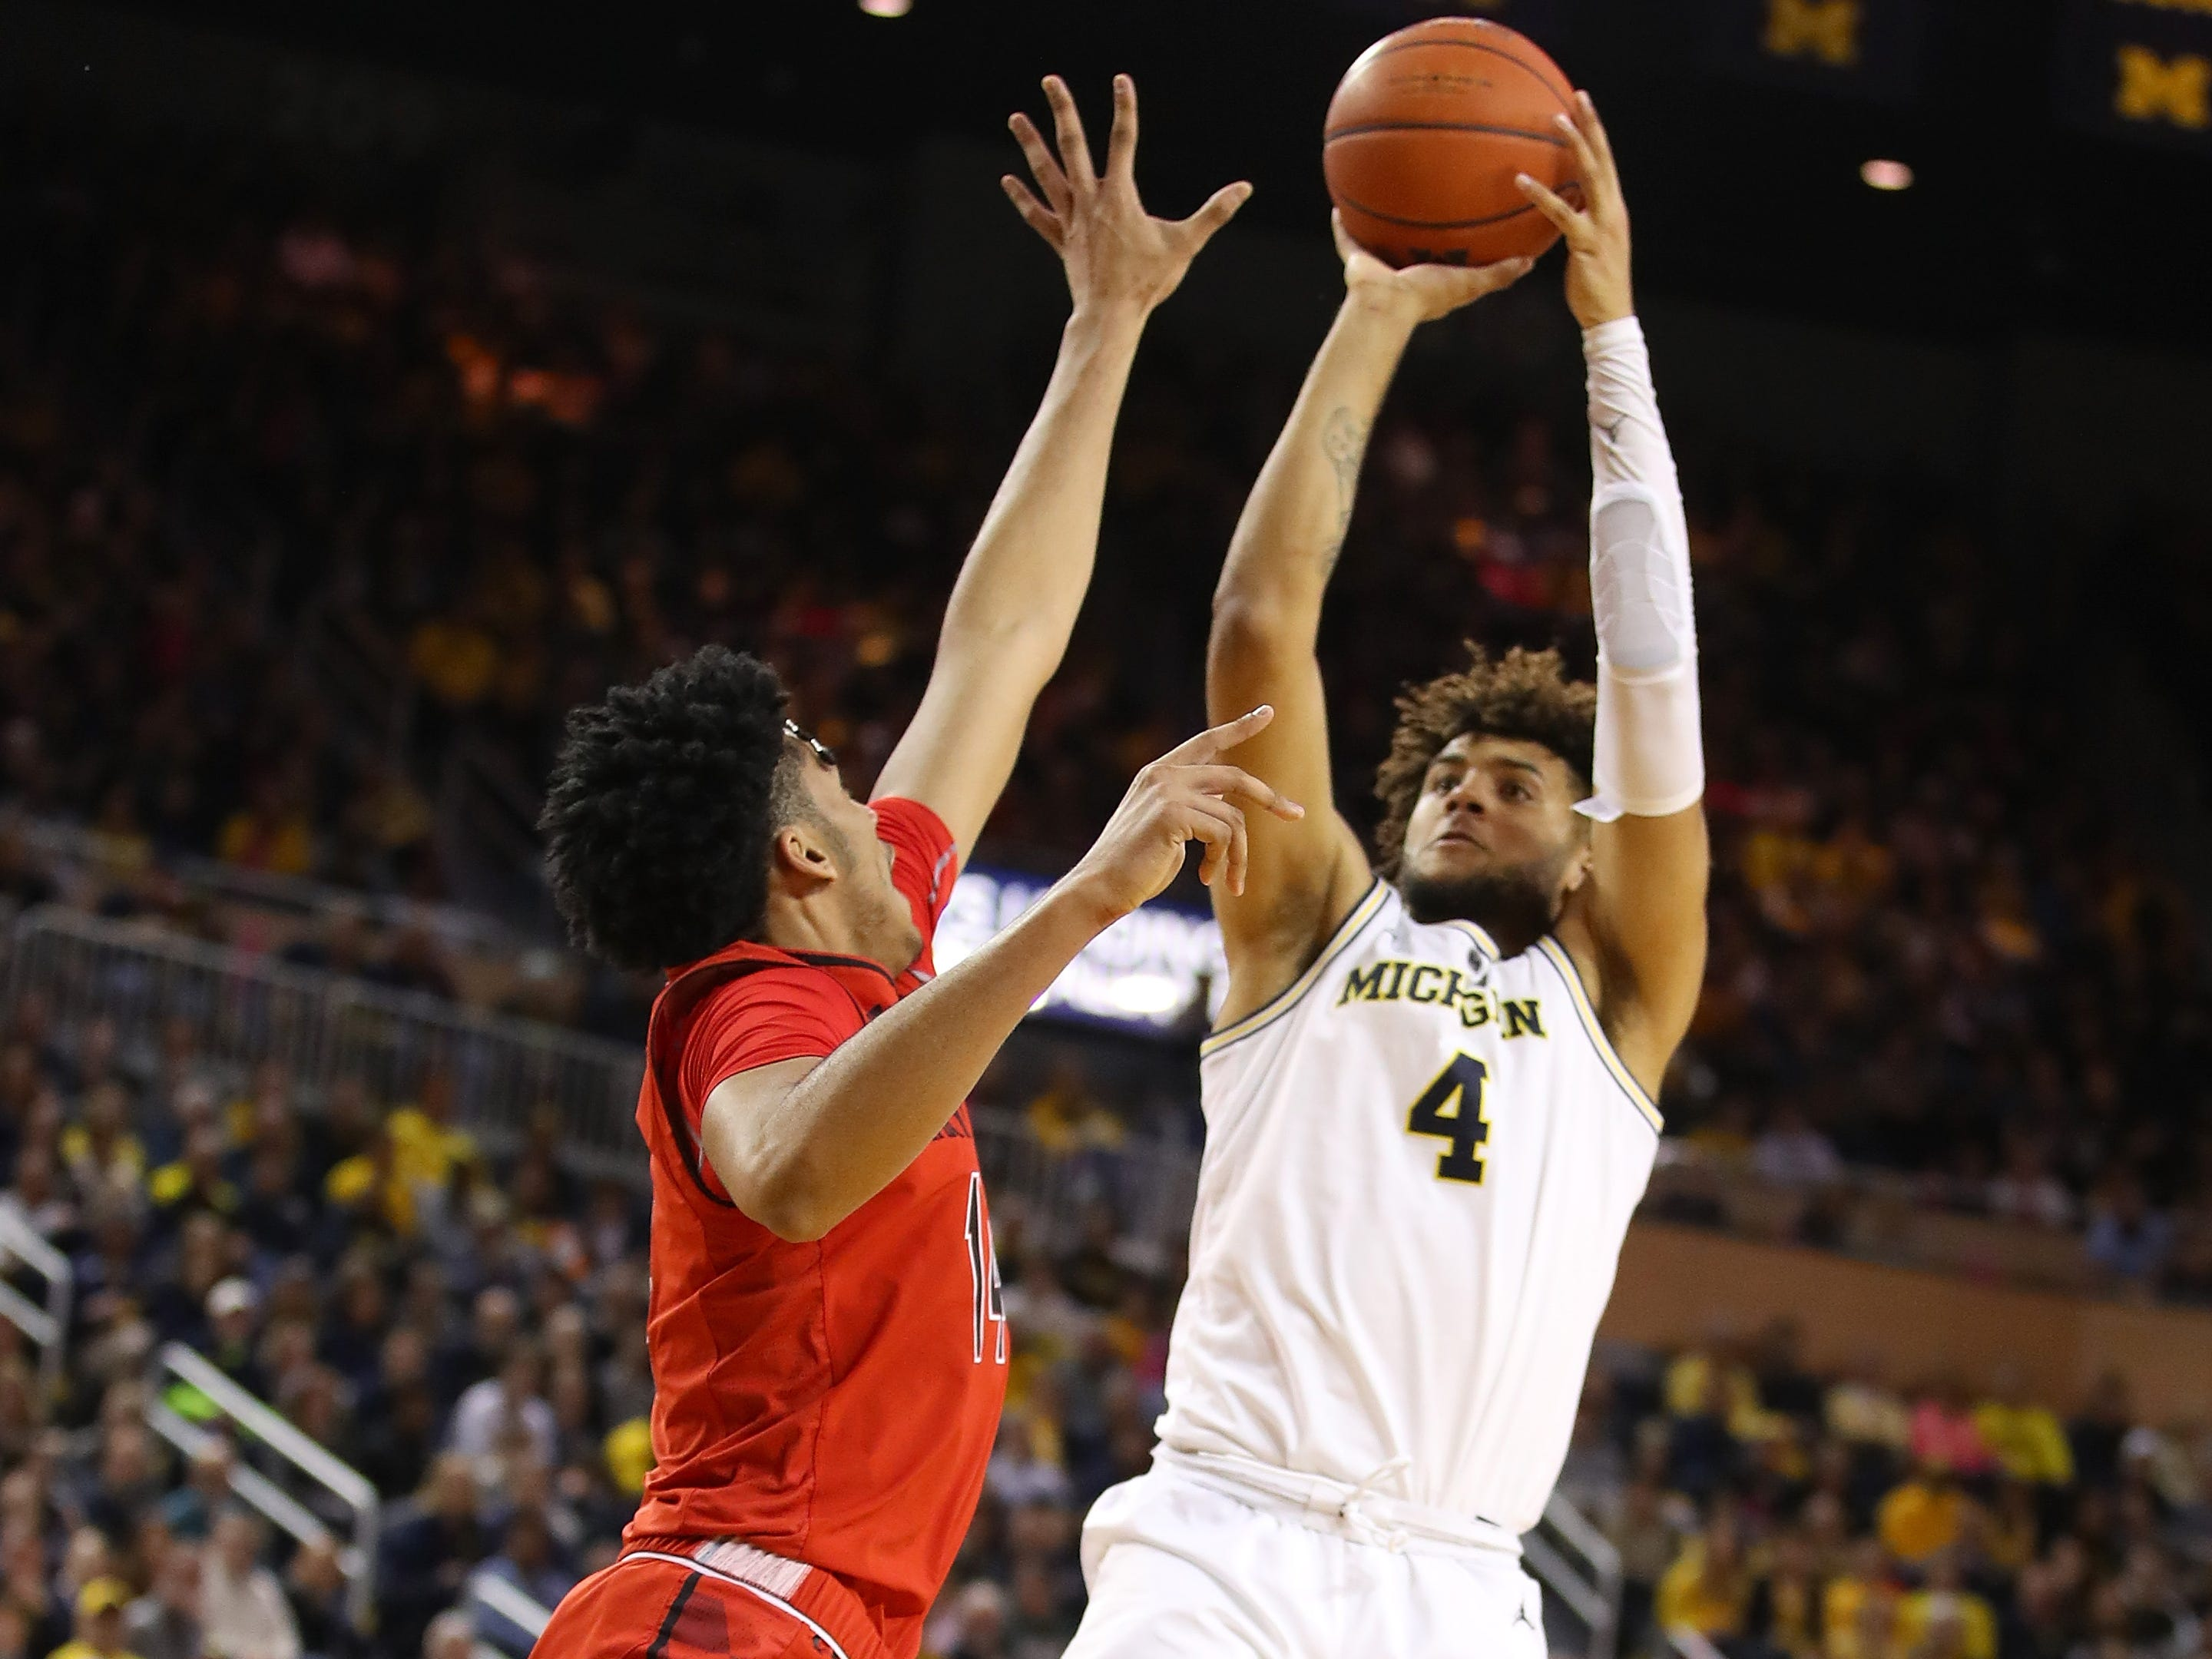 Michigan's Isaiah Livers shoots over Maryland's Ricky Lindo Jr. at Crisler Center on Feb. 16, 2019 in Ann Arbor.